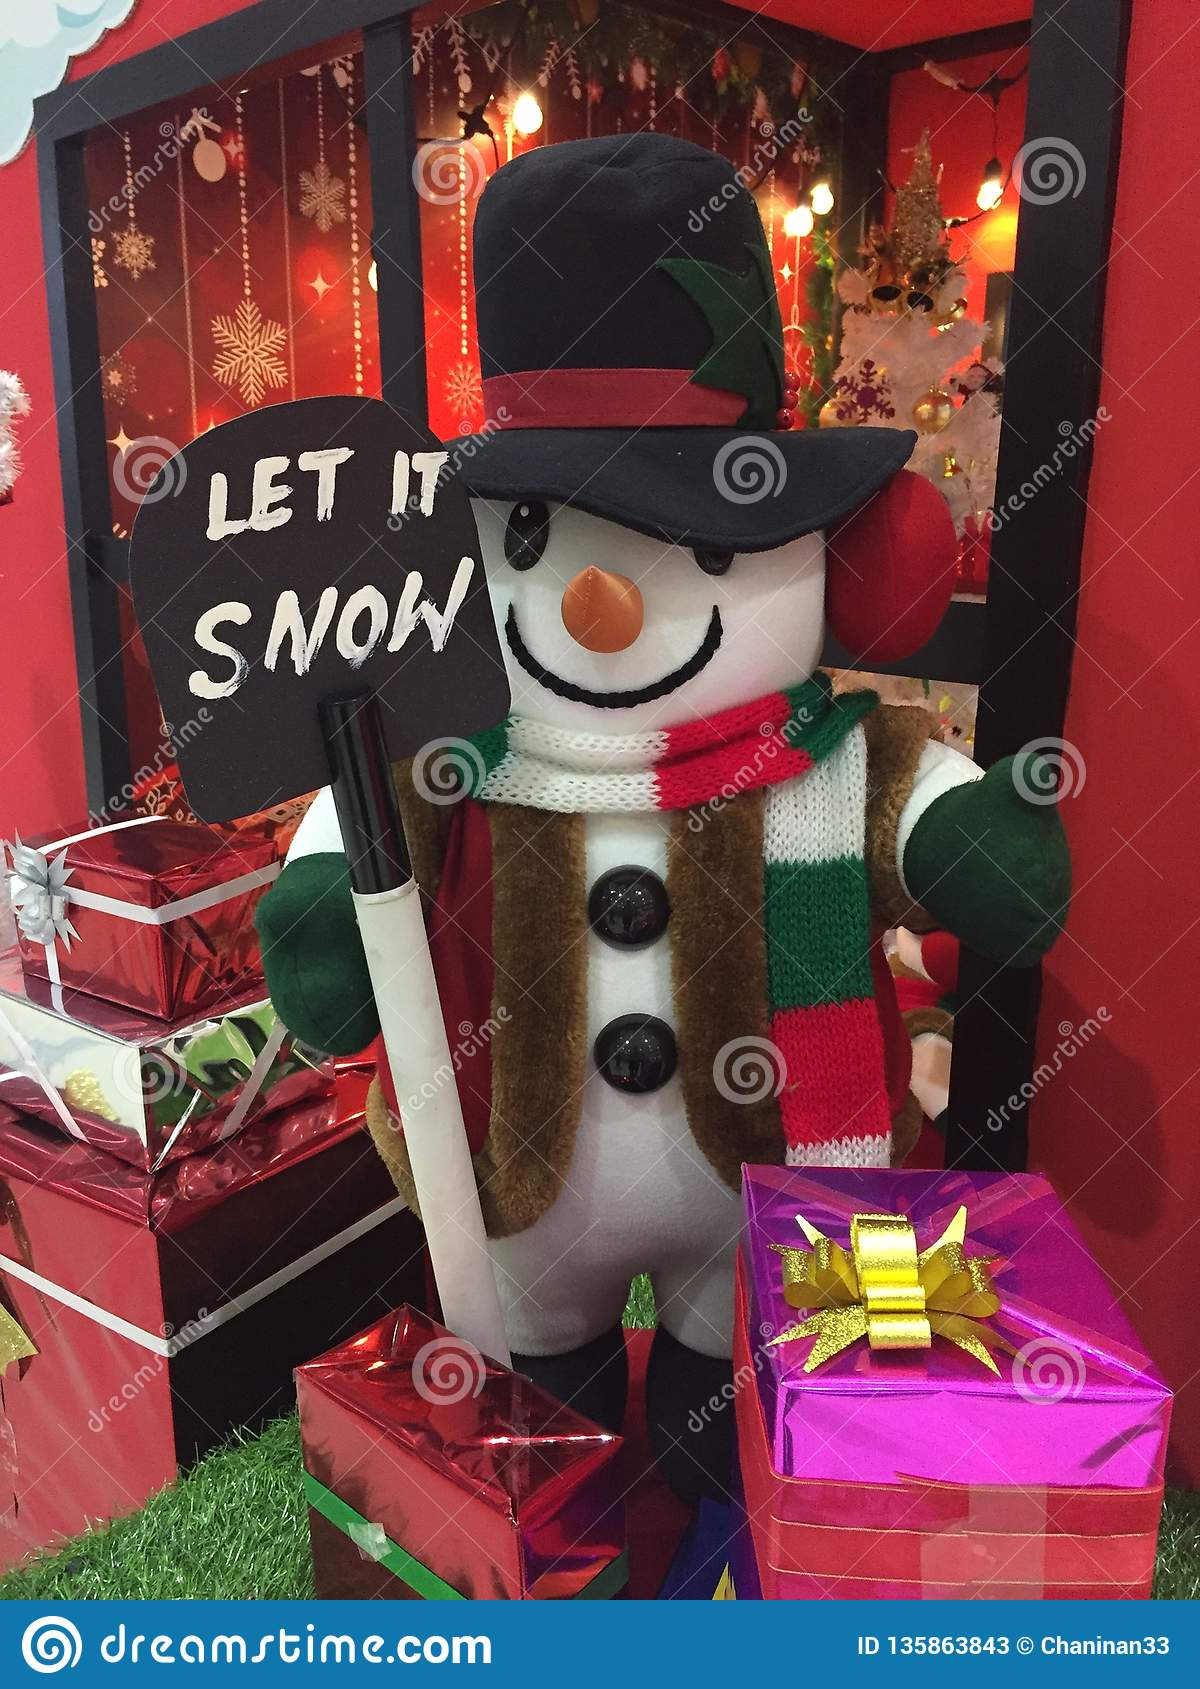 Snowman is coming to town.